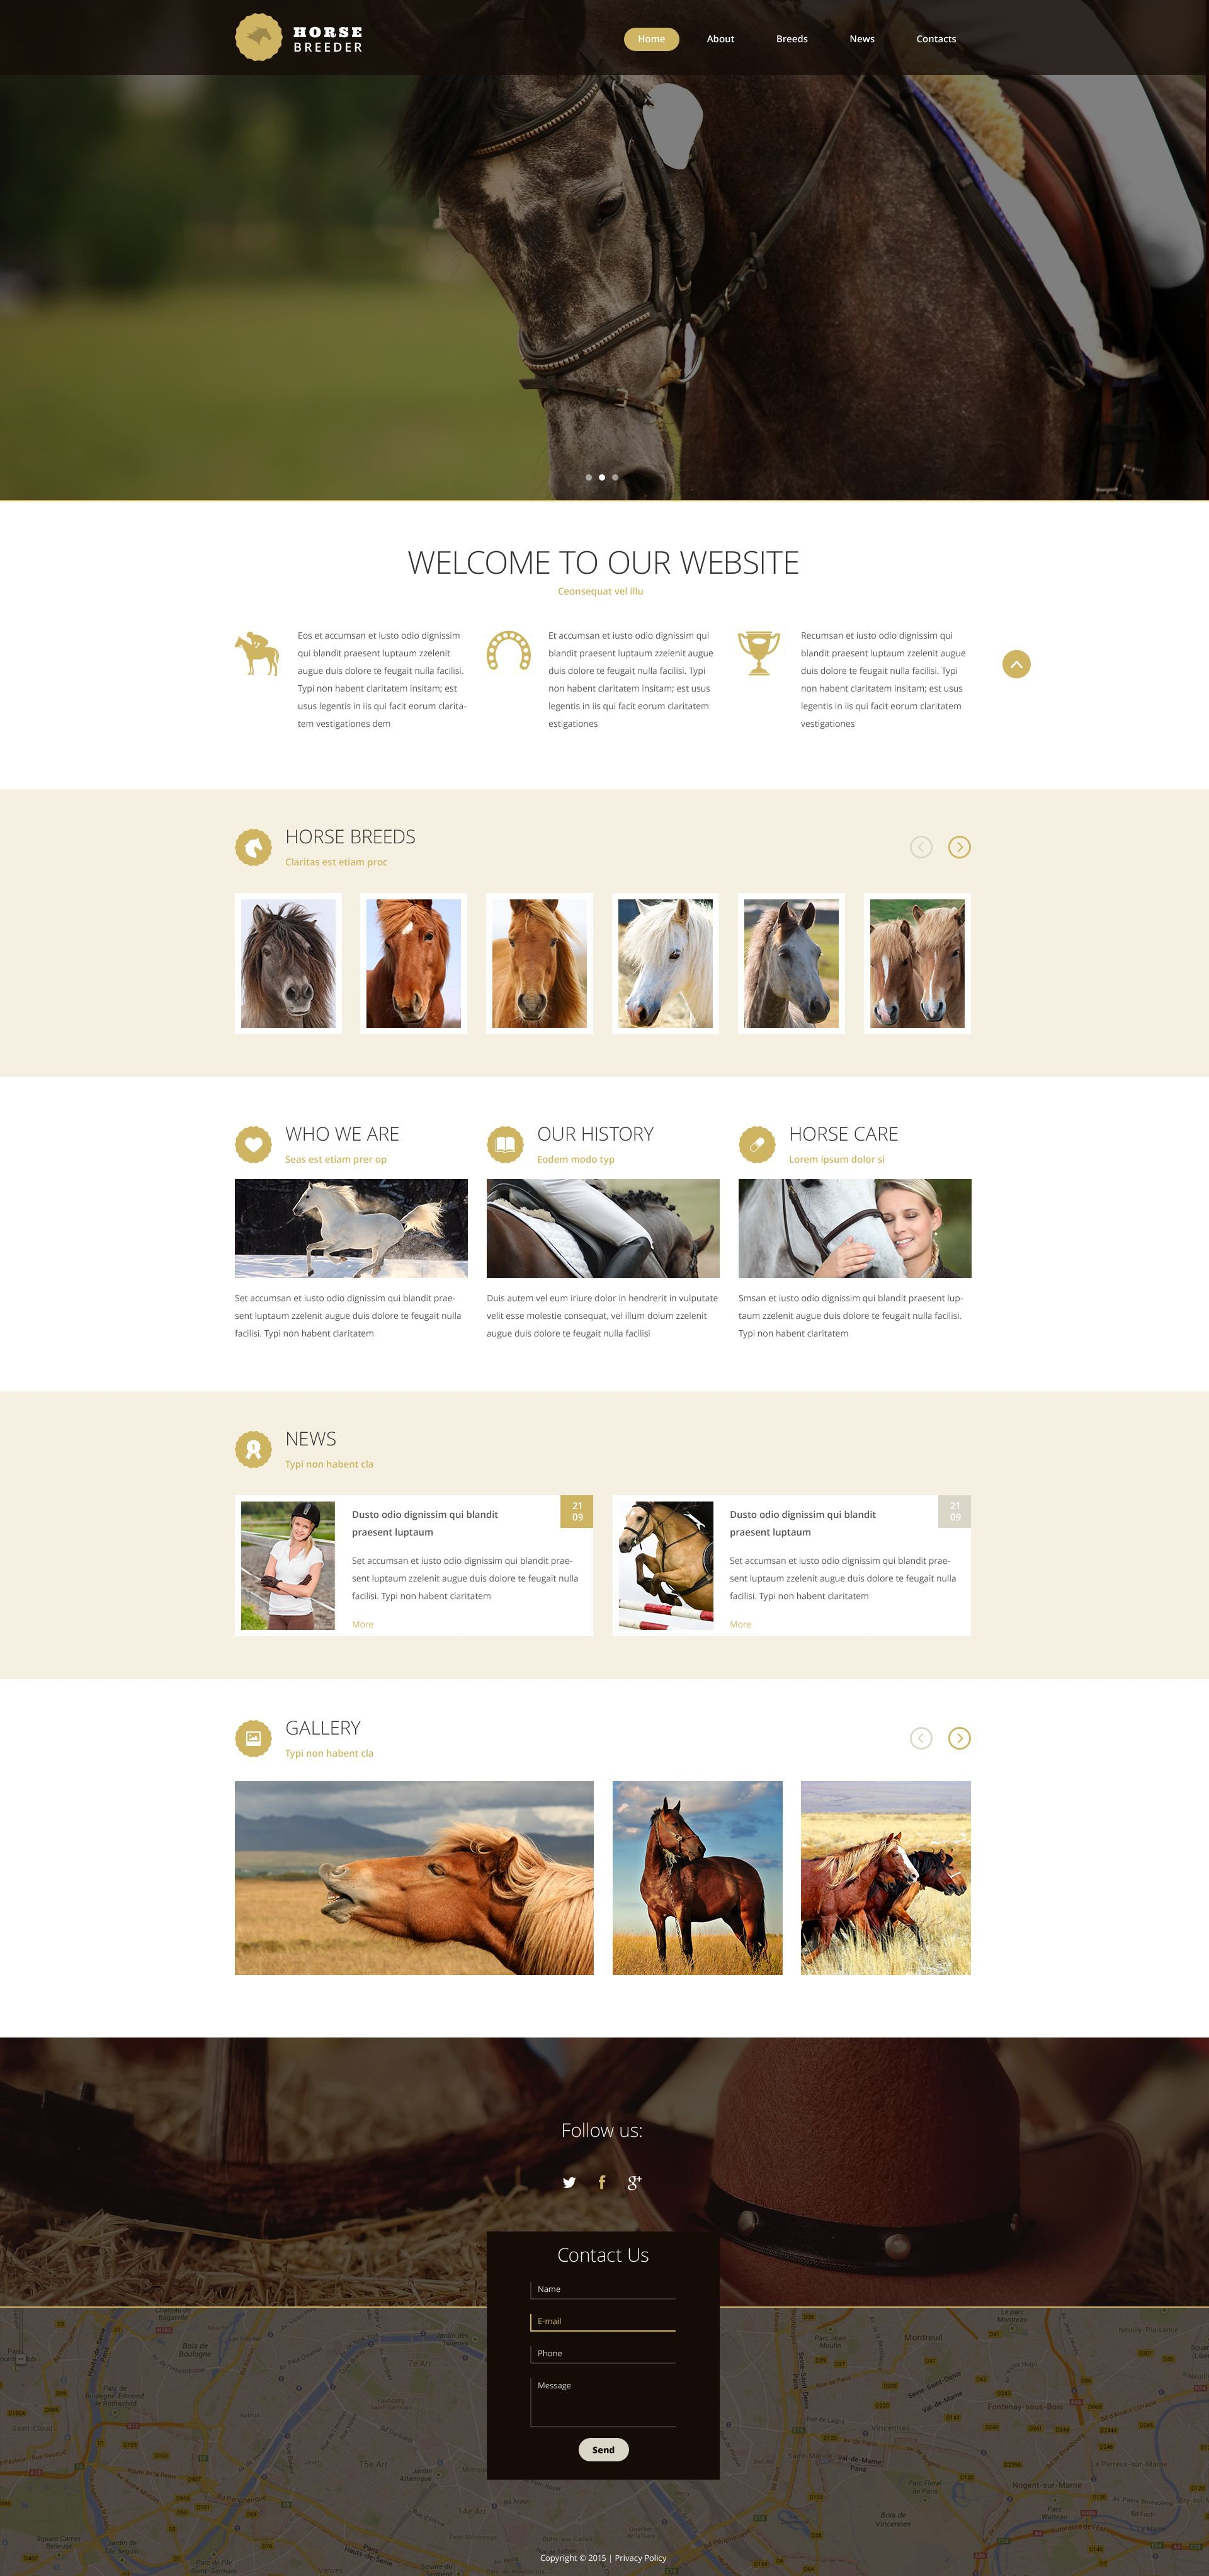 The Horse Breeder Club Responsive Javascript Animated Design 53786, one of the best website templates of its kind (animals & pets, most popular), also known as horse breeder club website template, sport website template, racing club website template, members website template, flat website template, obstacle website template, hippodrome website template, racecourse website template, championship website template, champions and related with horse breeder club, sport, racing club, members, flat, obstacle, hippodrome, racecourse, championship, champions, etc.